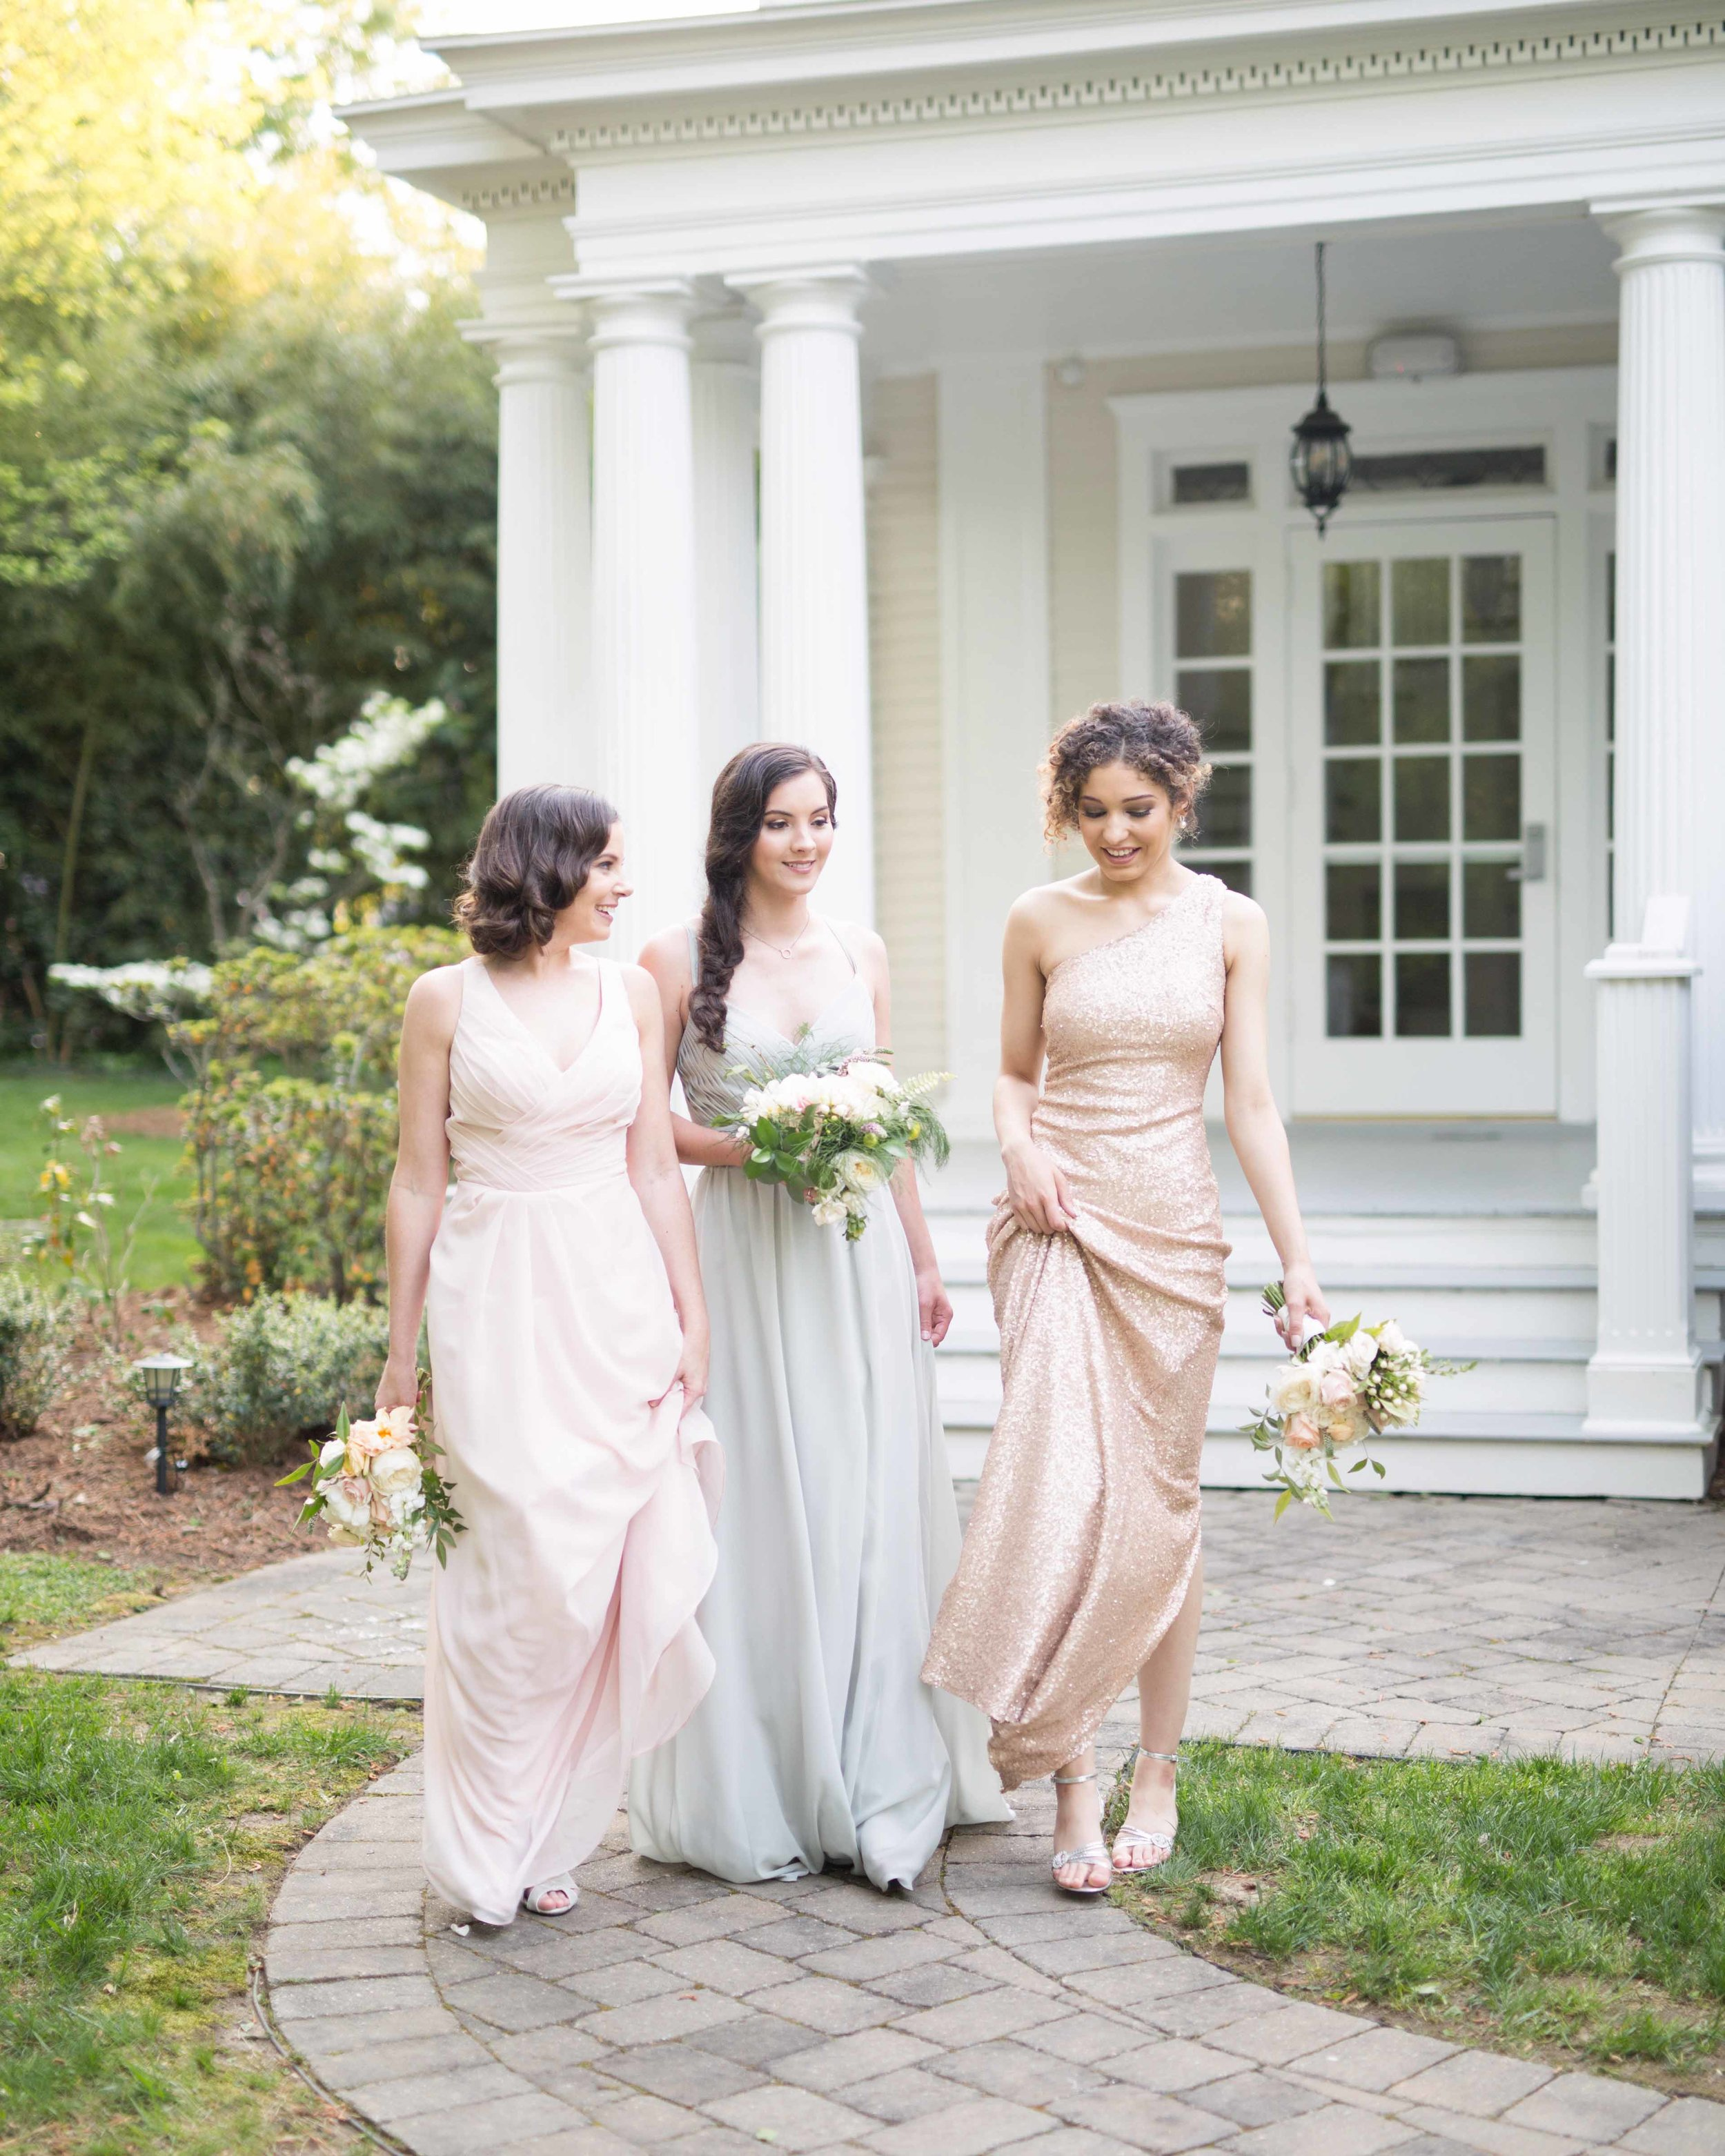 Photo by Stephanie Batten Photography. Planning by Taylor'd Southern Events. Hosted at the McAlister-Leftwich House.